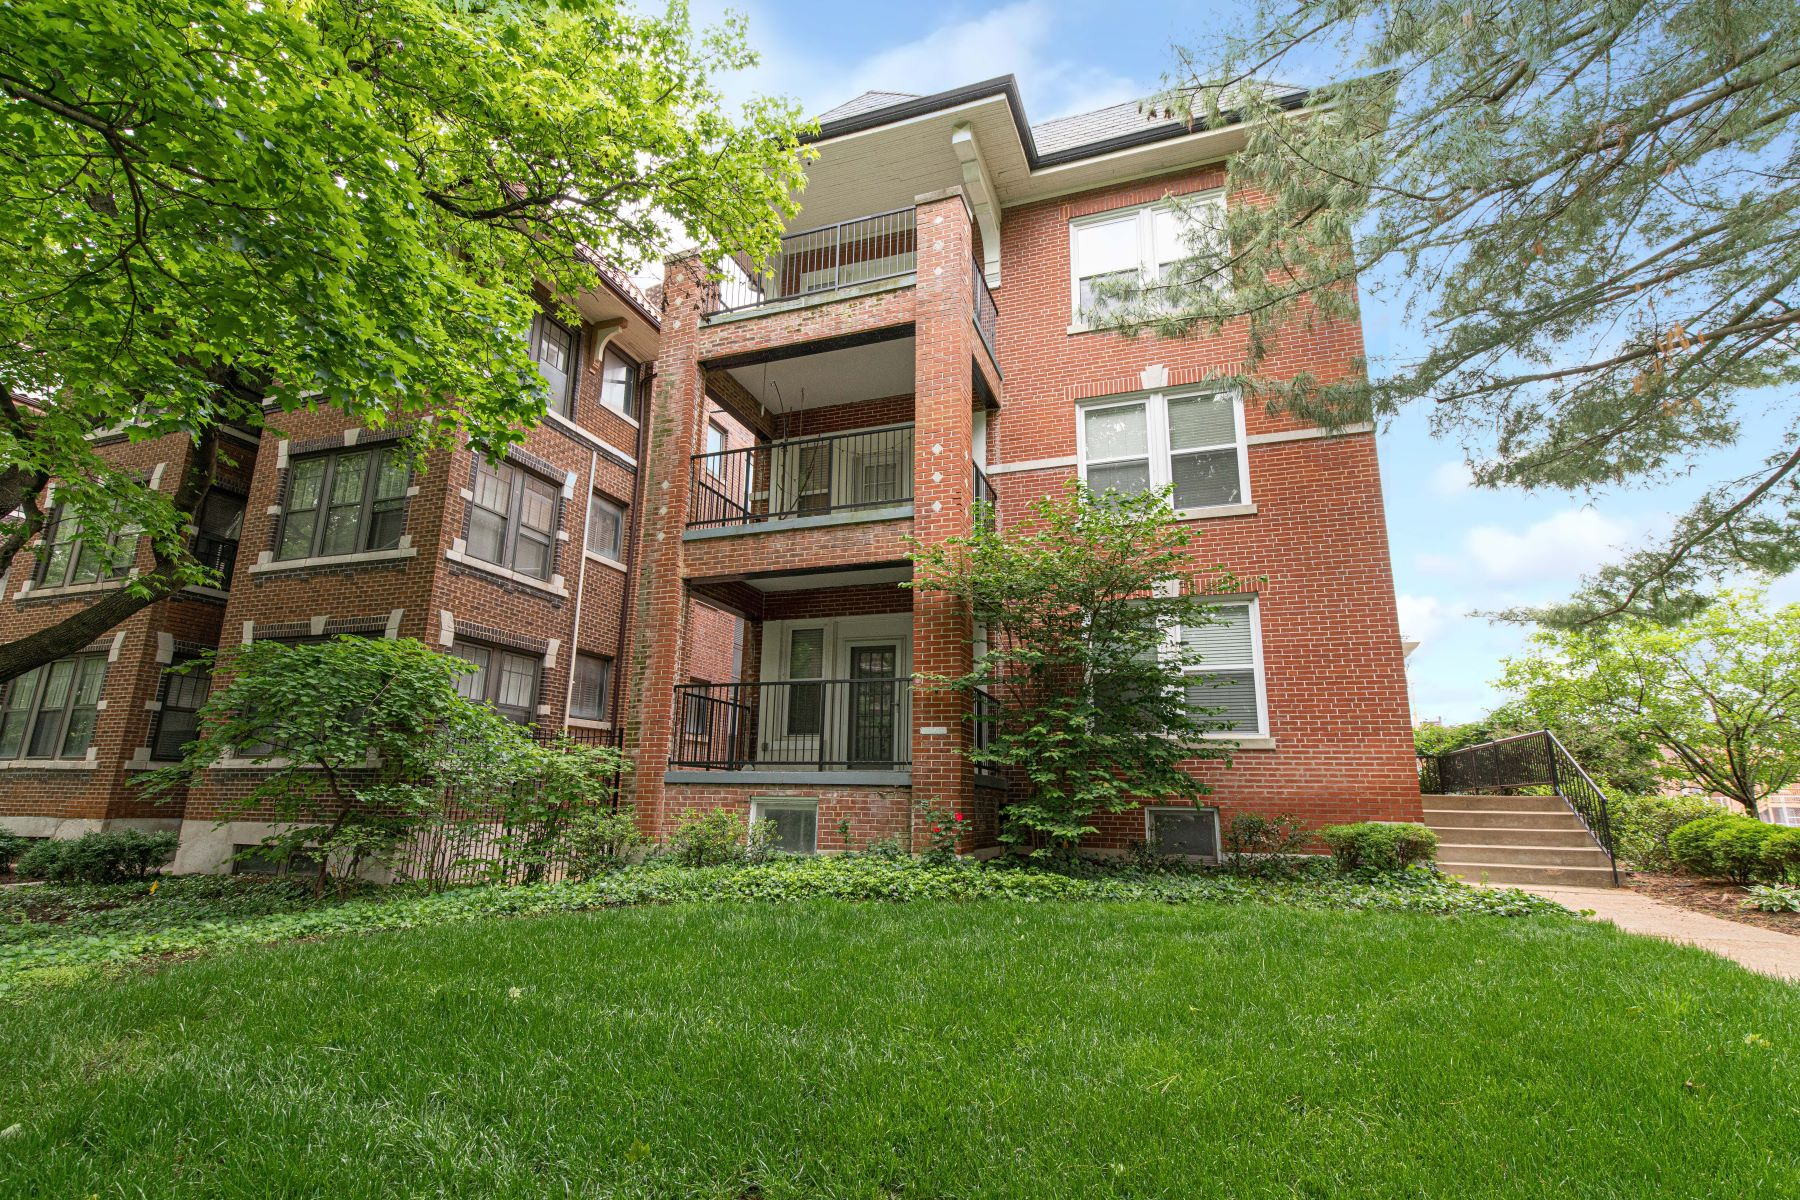 Condominiums for Sale at Charming Condo on Waterman Boulevard 5528 Waterman Boulevard #22 St. Louis, Missouri 63112 United States